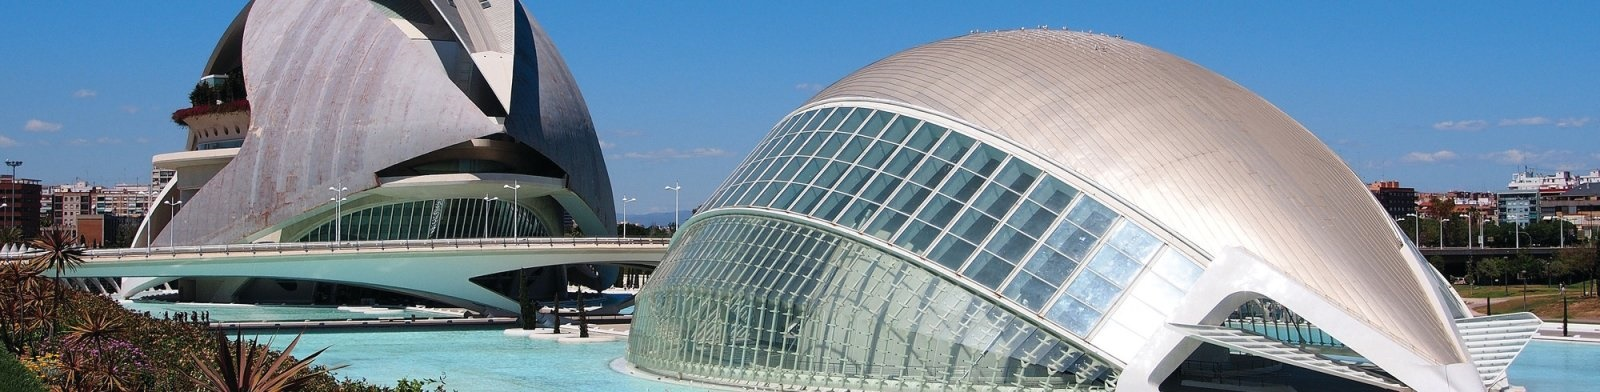 Valencia, Queen Sofia Palace of the Arts